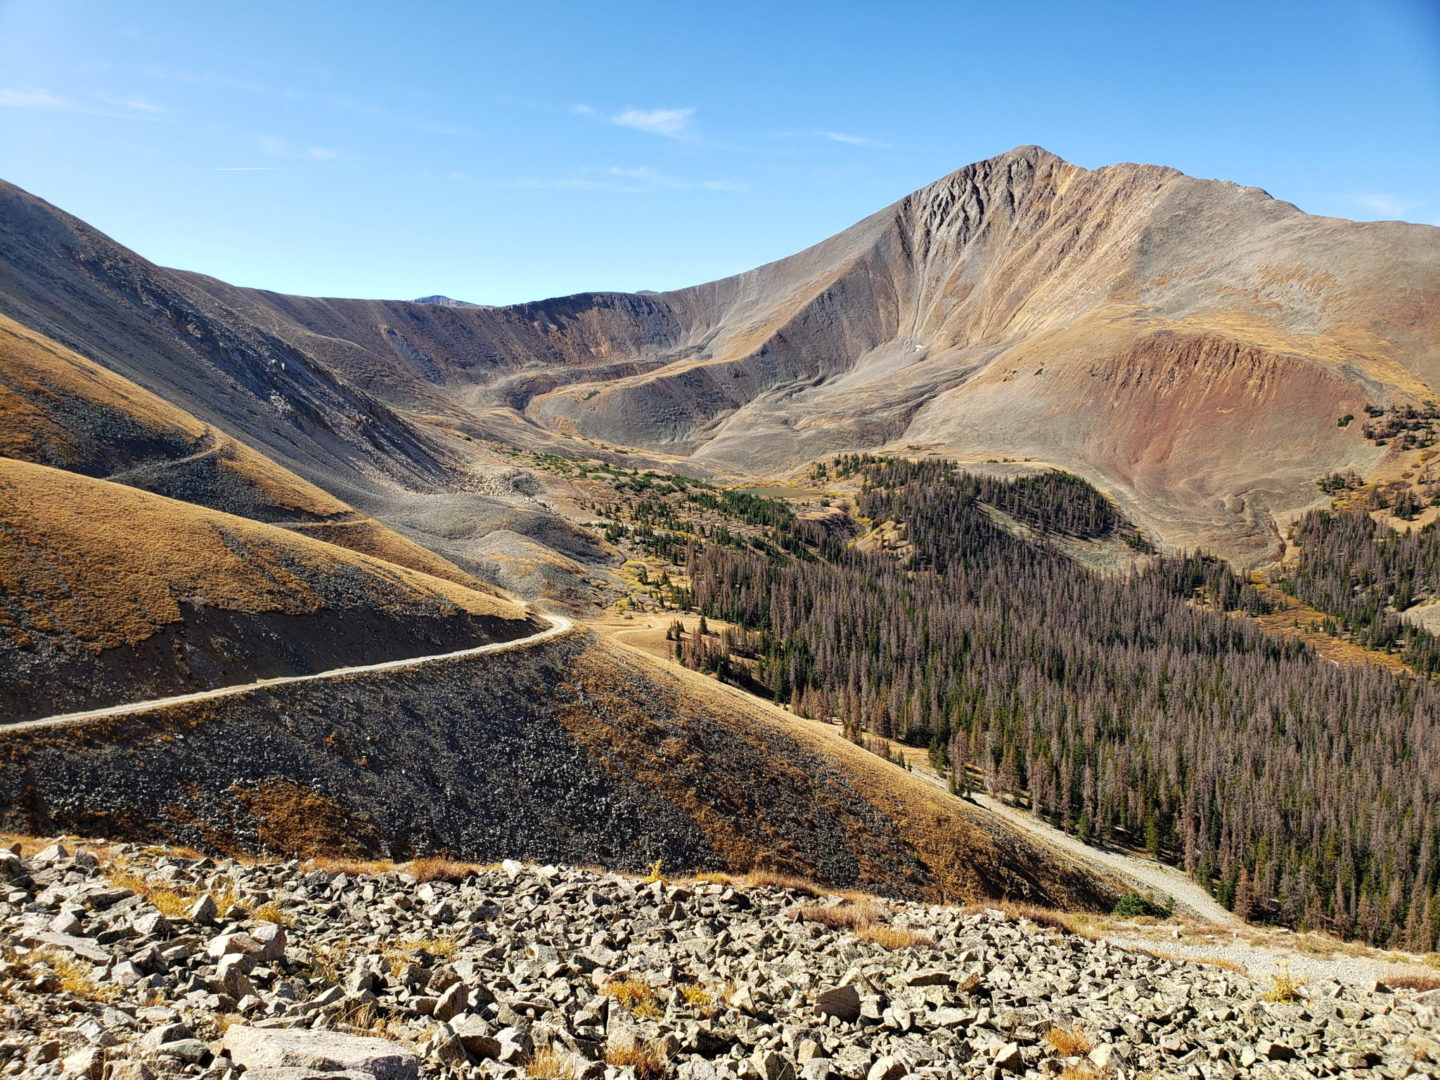 View of Cronin Peak (13,870') from the west side of Mt Antero